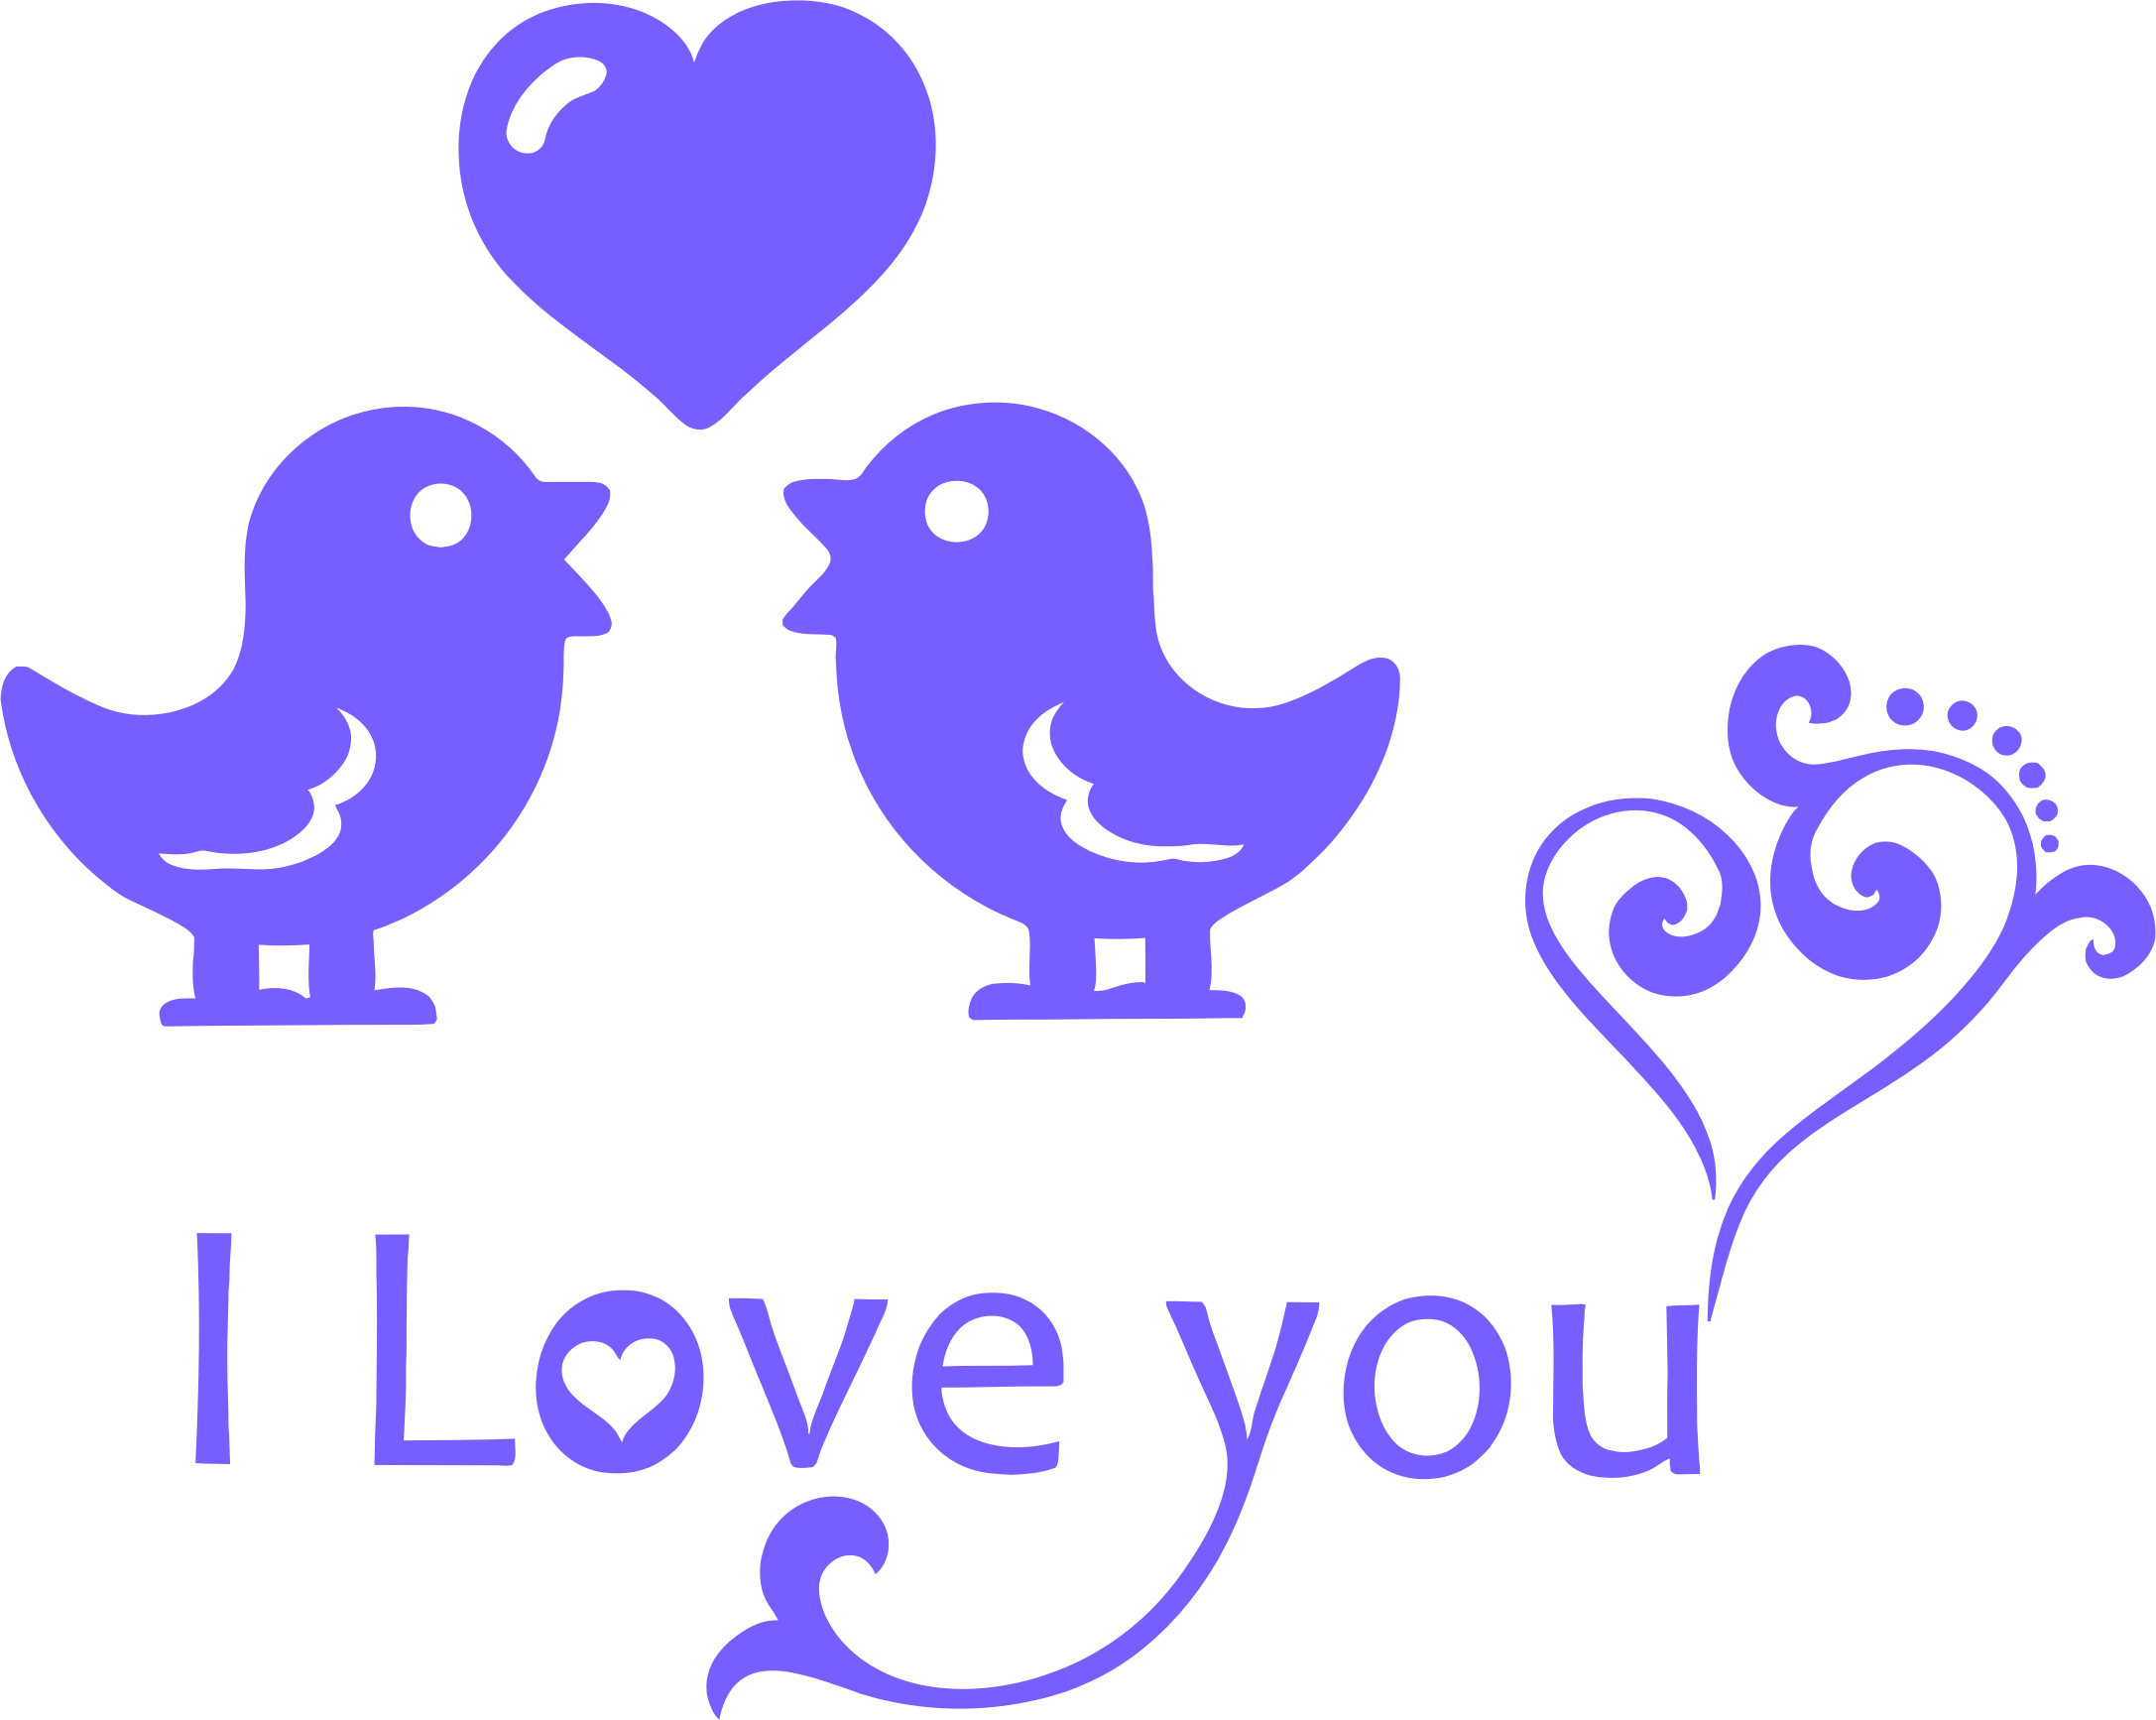 I Love You Typography by GDJ